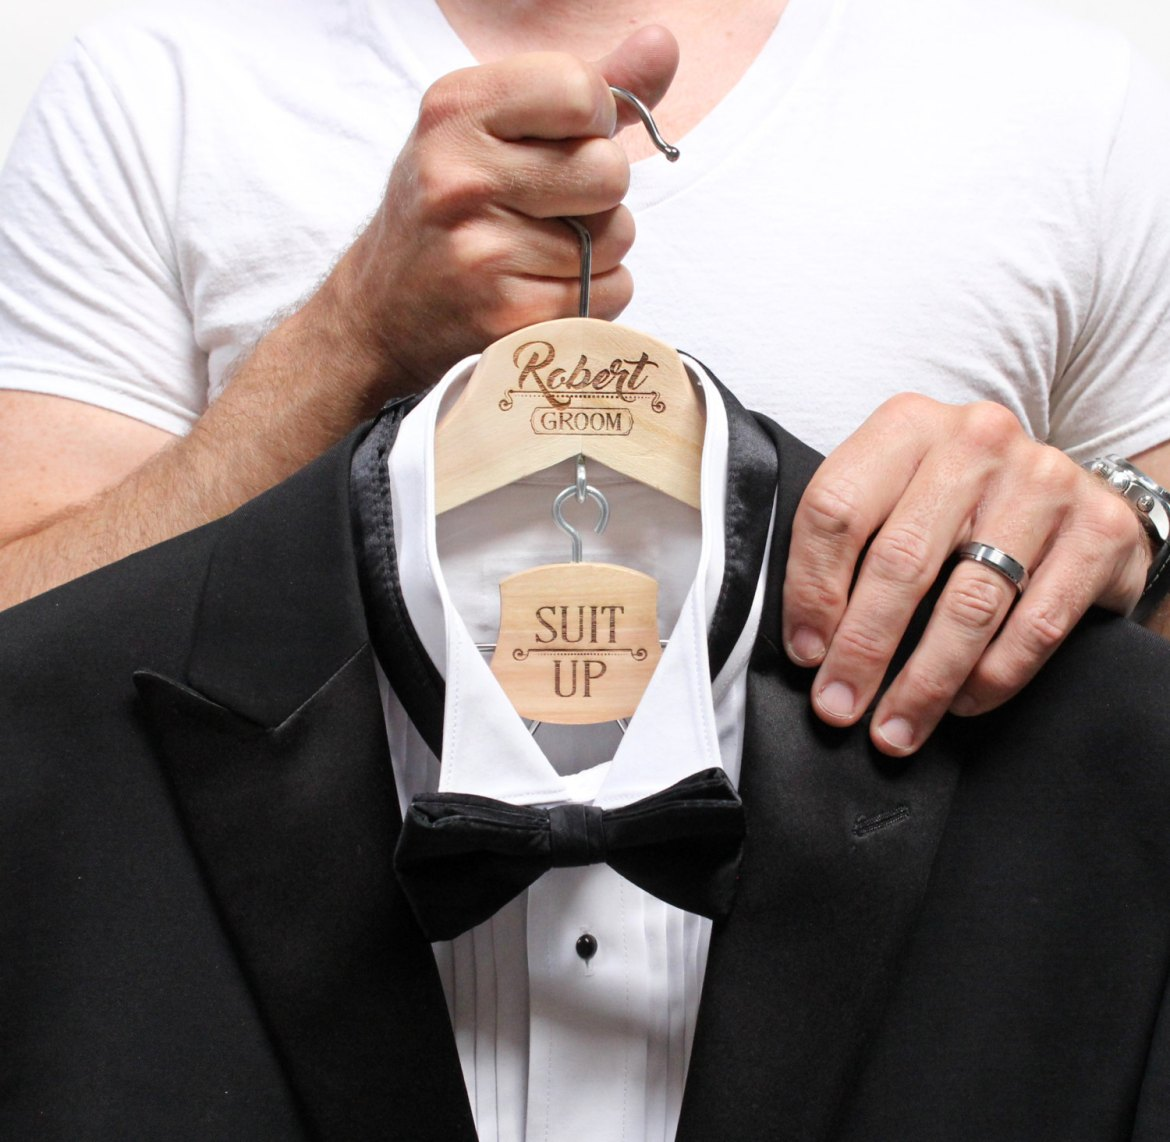 groom hanger personalized   http://etsy.me/2neyW3M